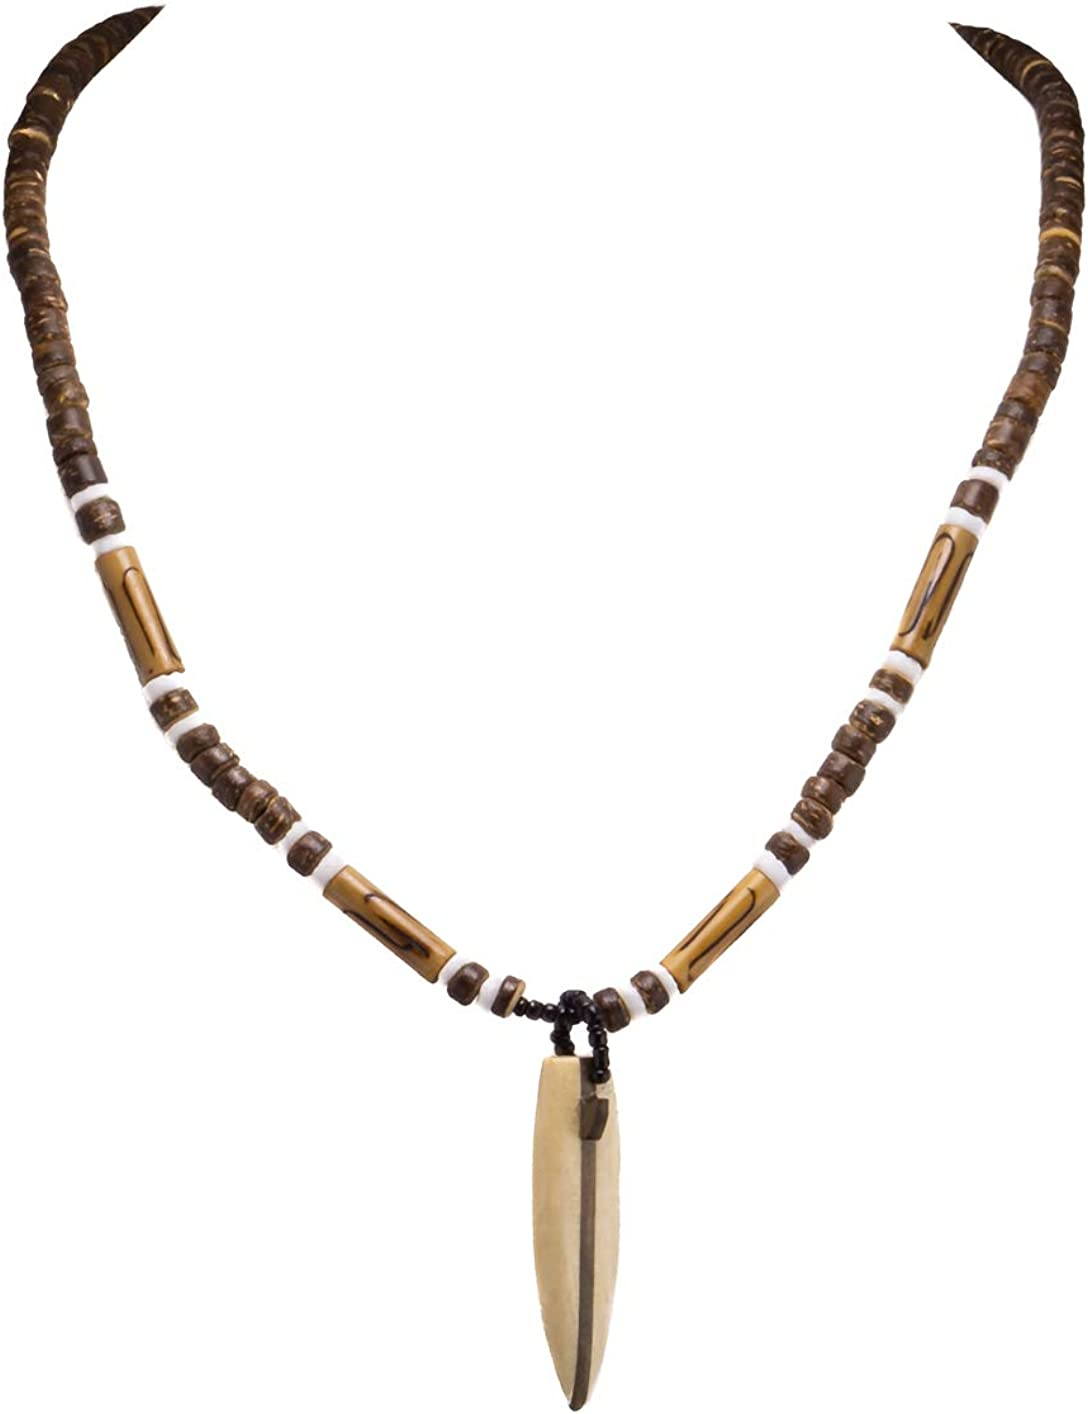 BlueRica Wood Surfboard Pendant on Coconut Beads Necklace